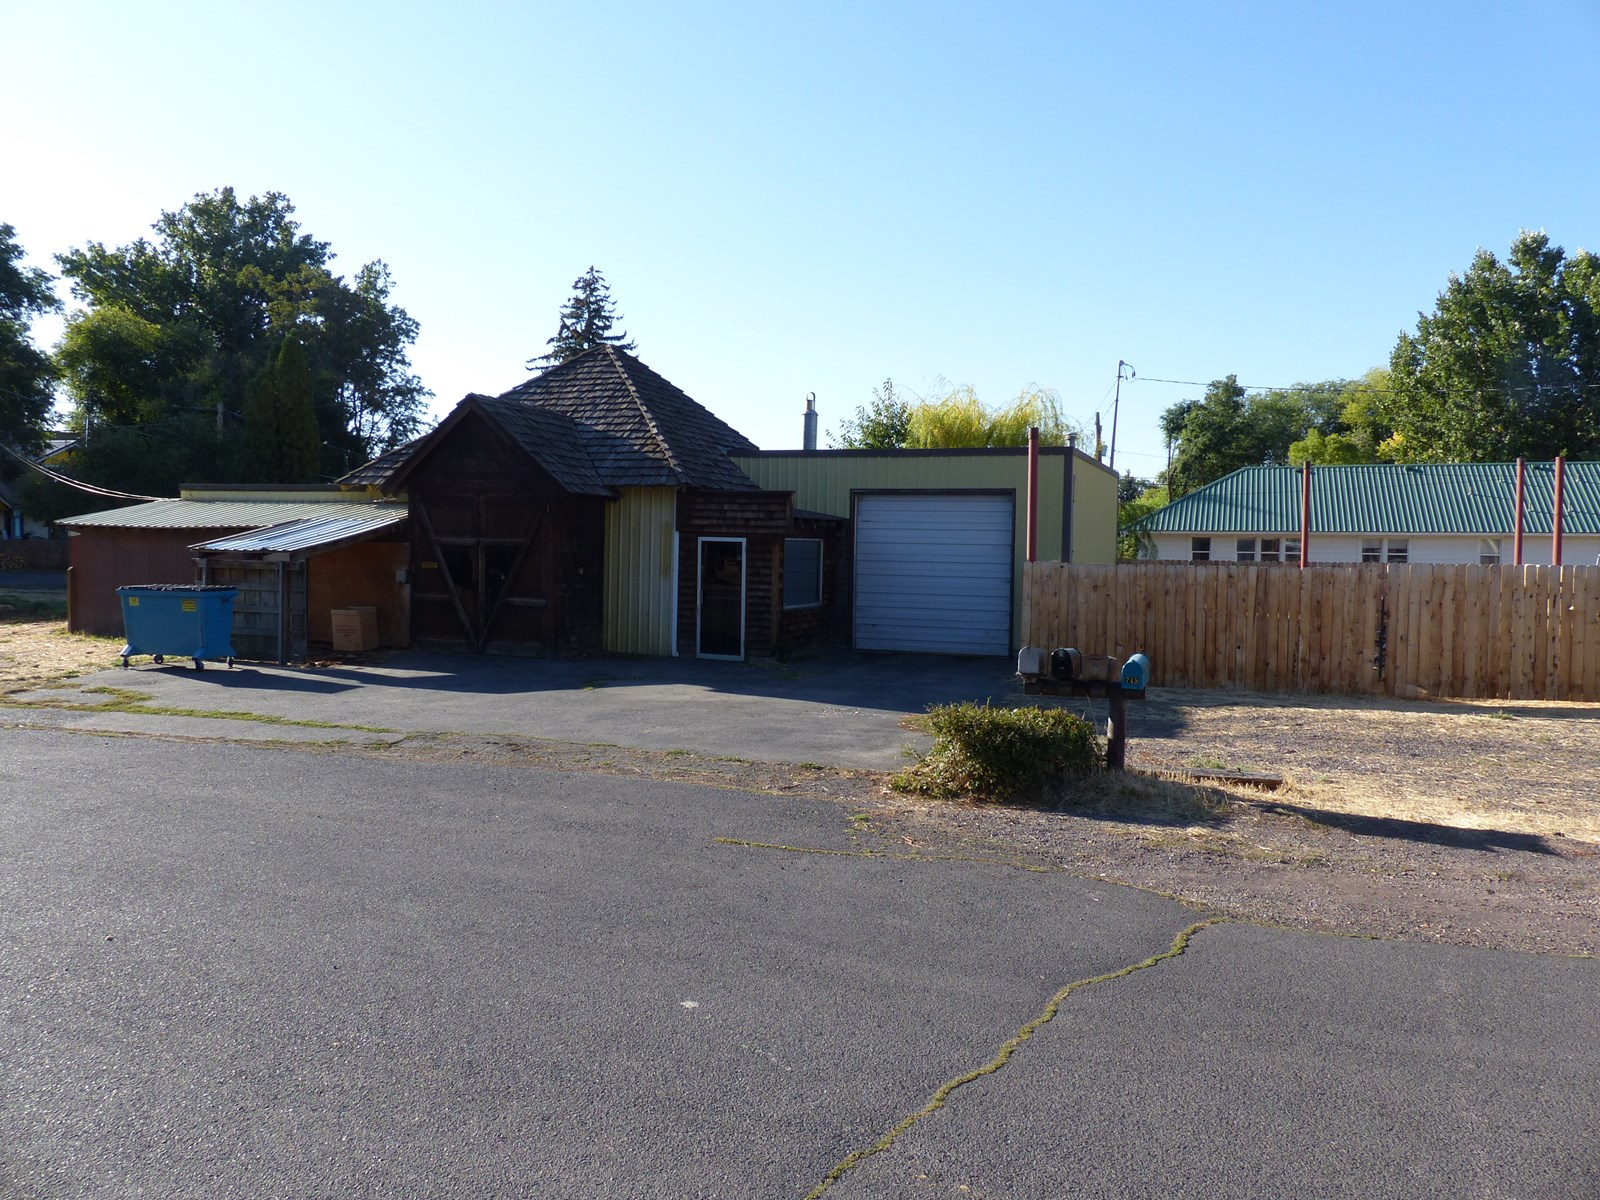 COMMERCIAL SHOP/WAREHOUSE FOR SALE IN BURNS OR